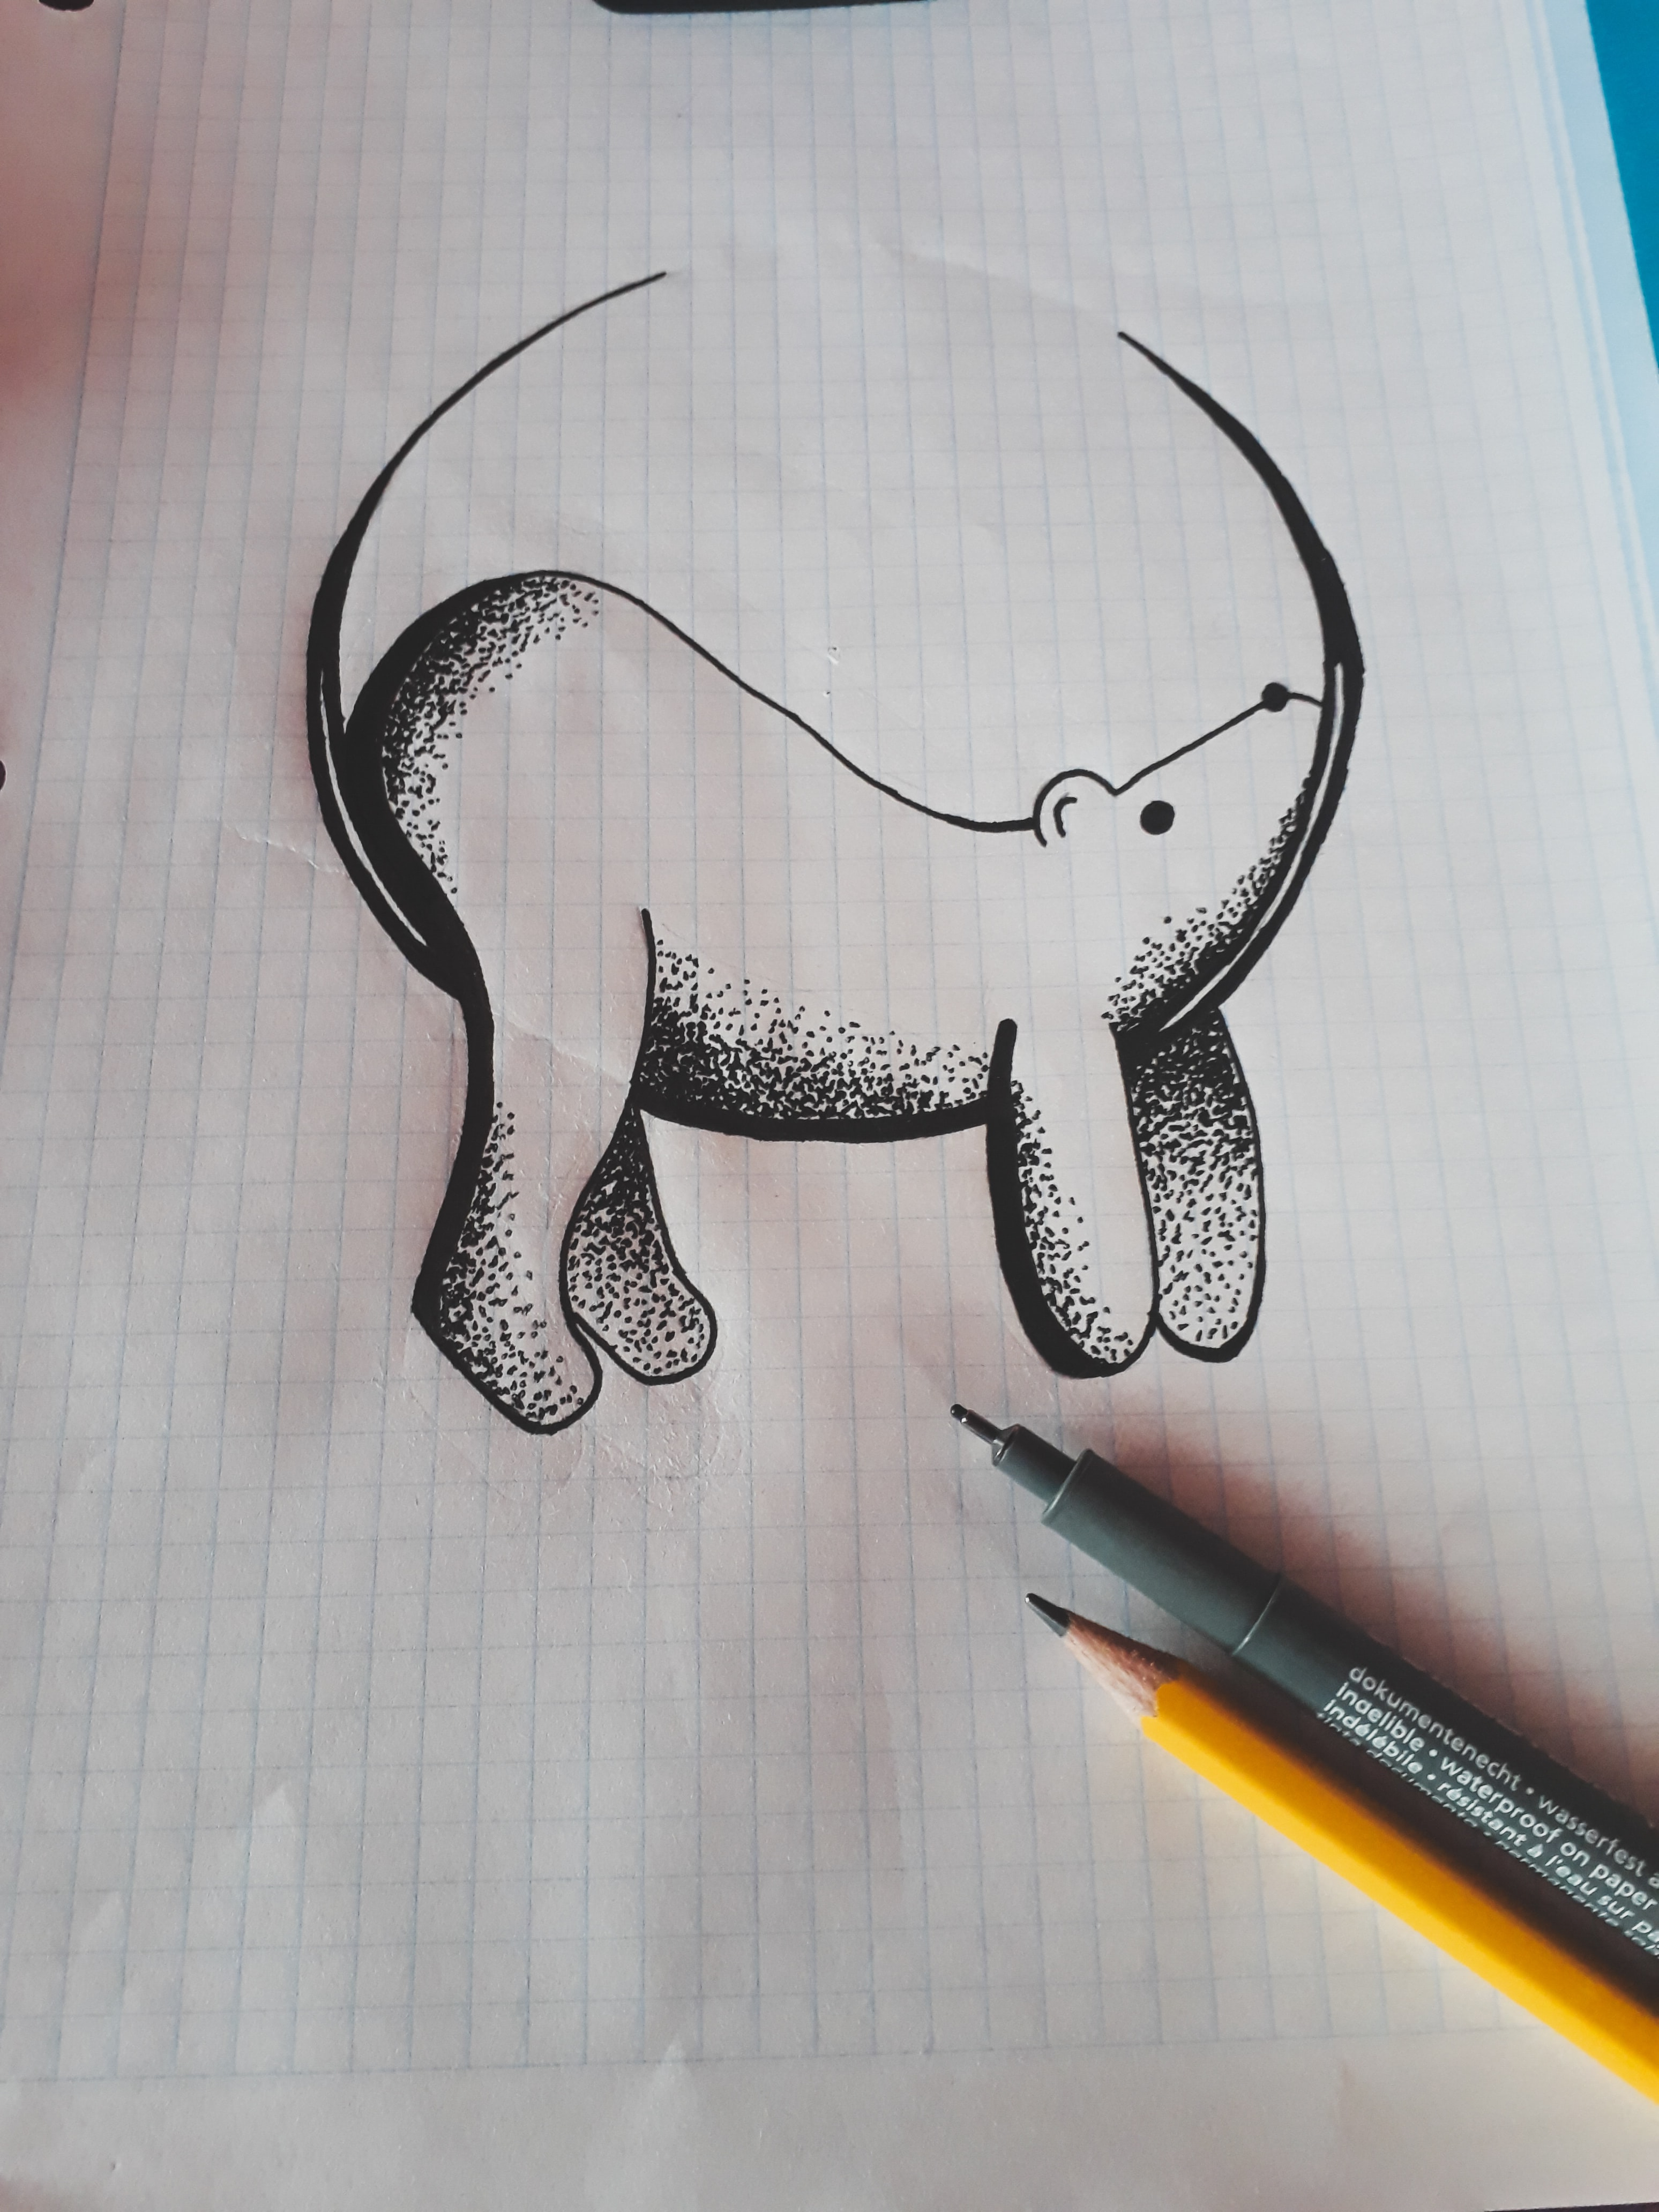 A drawing of a polar bear sitting on a crescent moon.